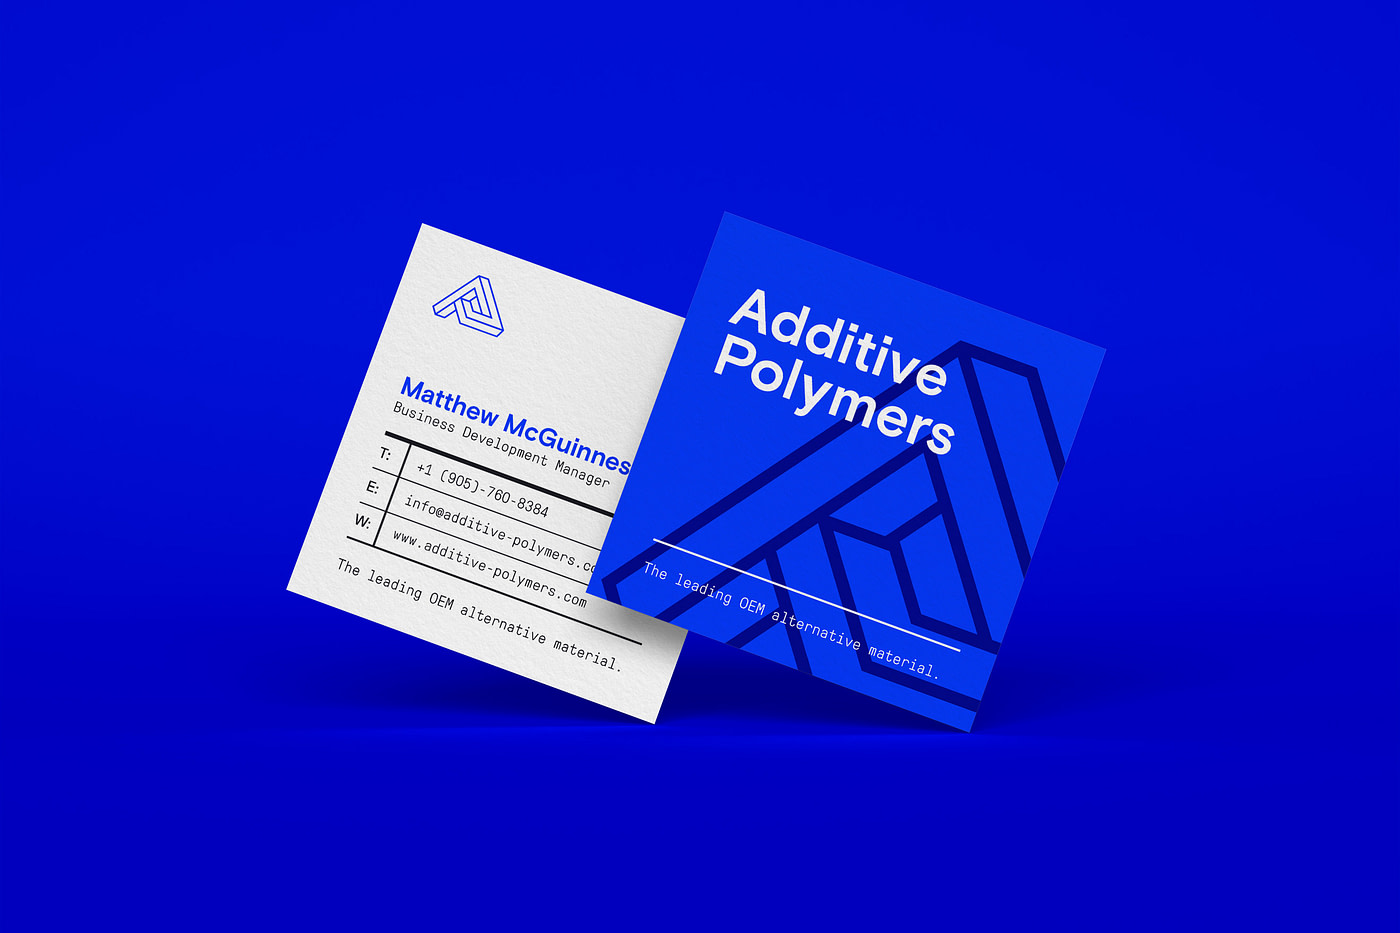 Bright blue and white business card for Additive Polymers. Reads: Matthew McGuinness